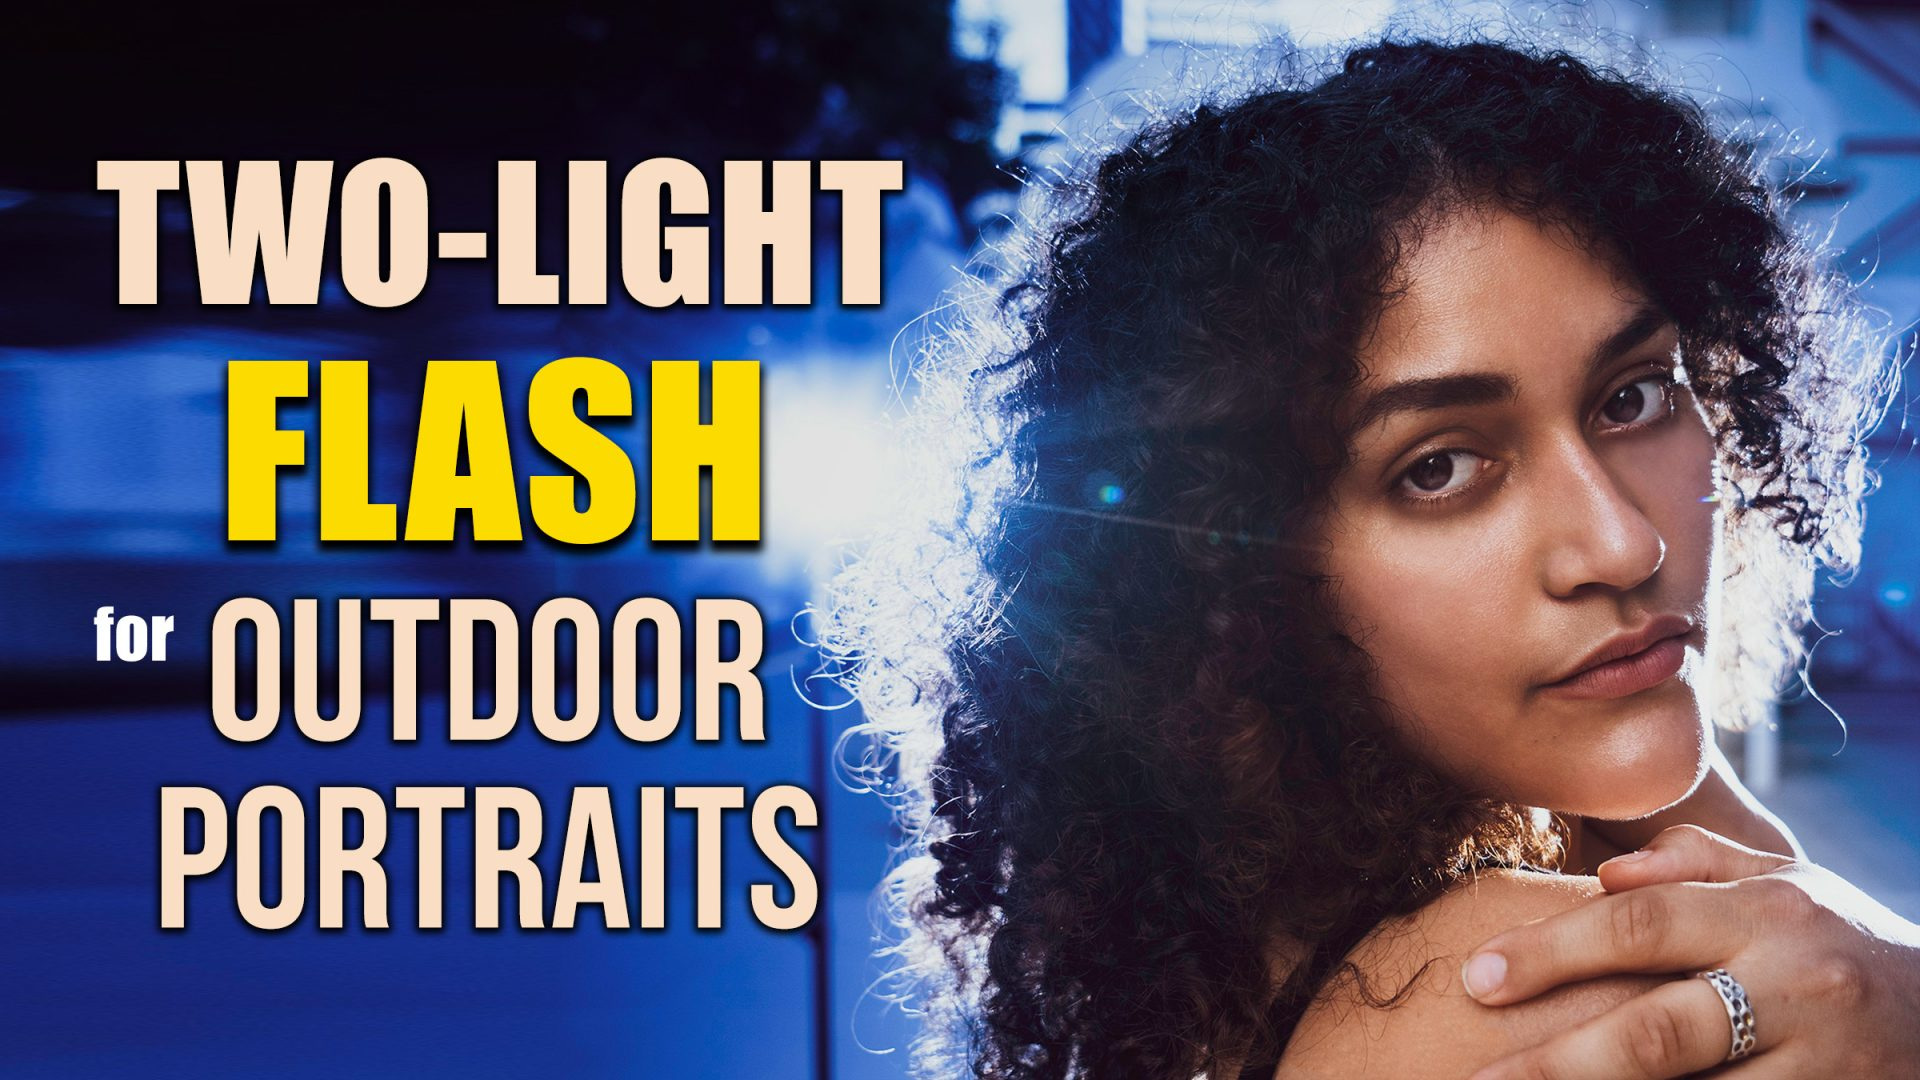 two-light-flash-outdoors-yt-thumb